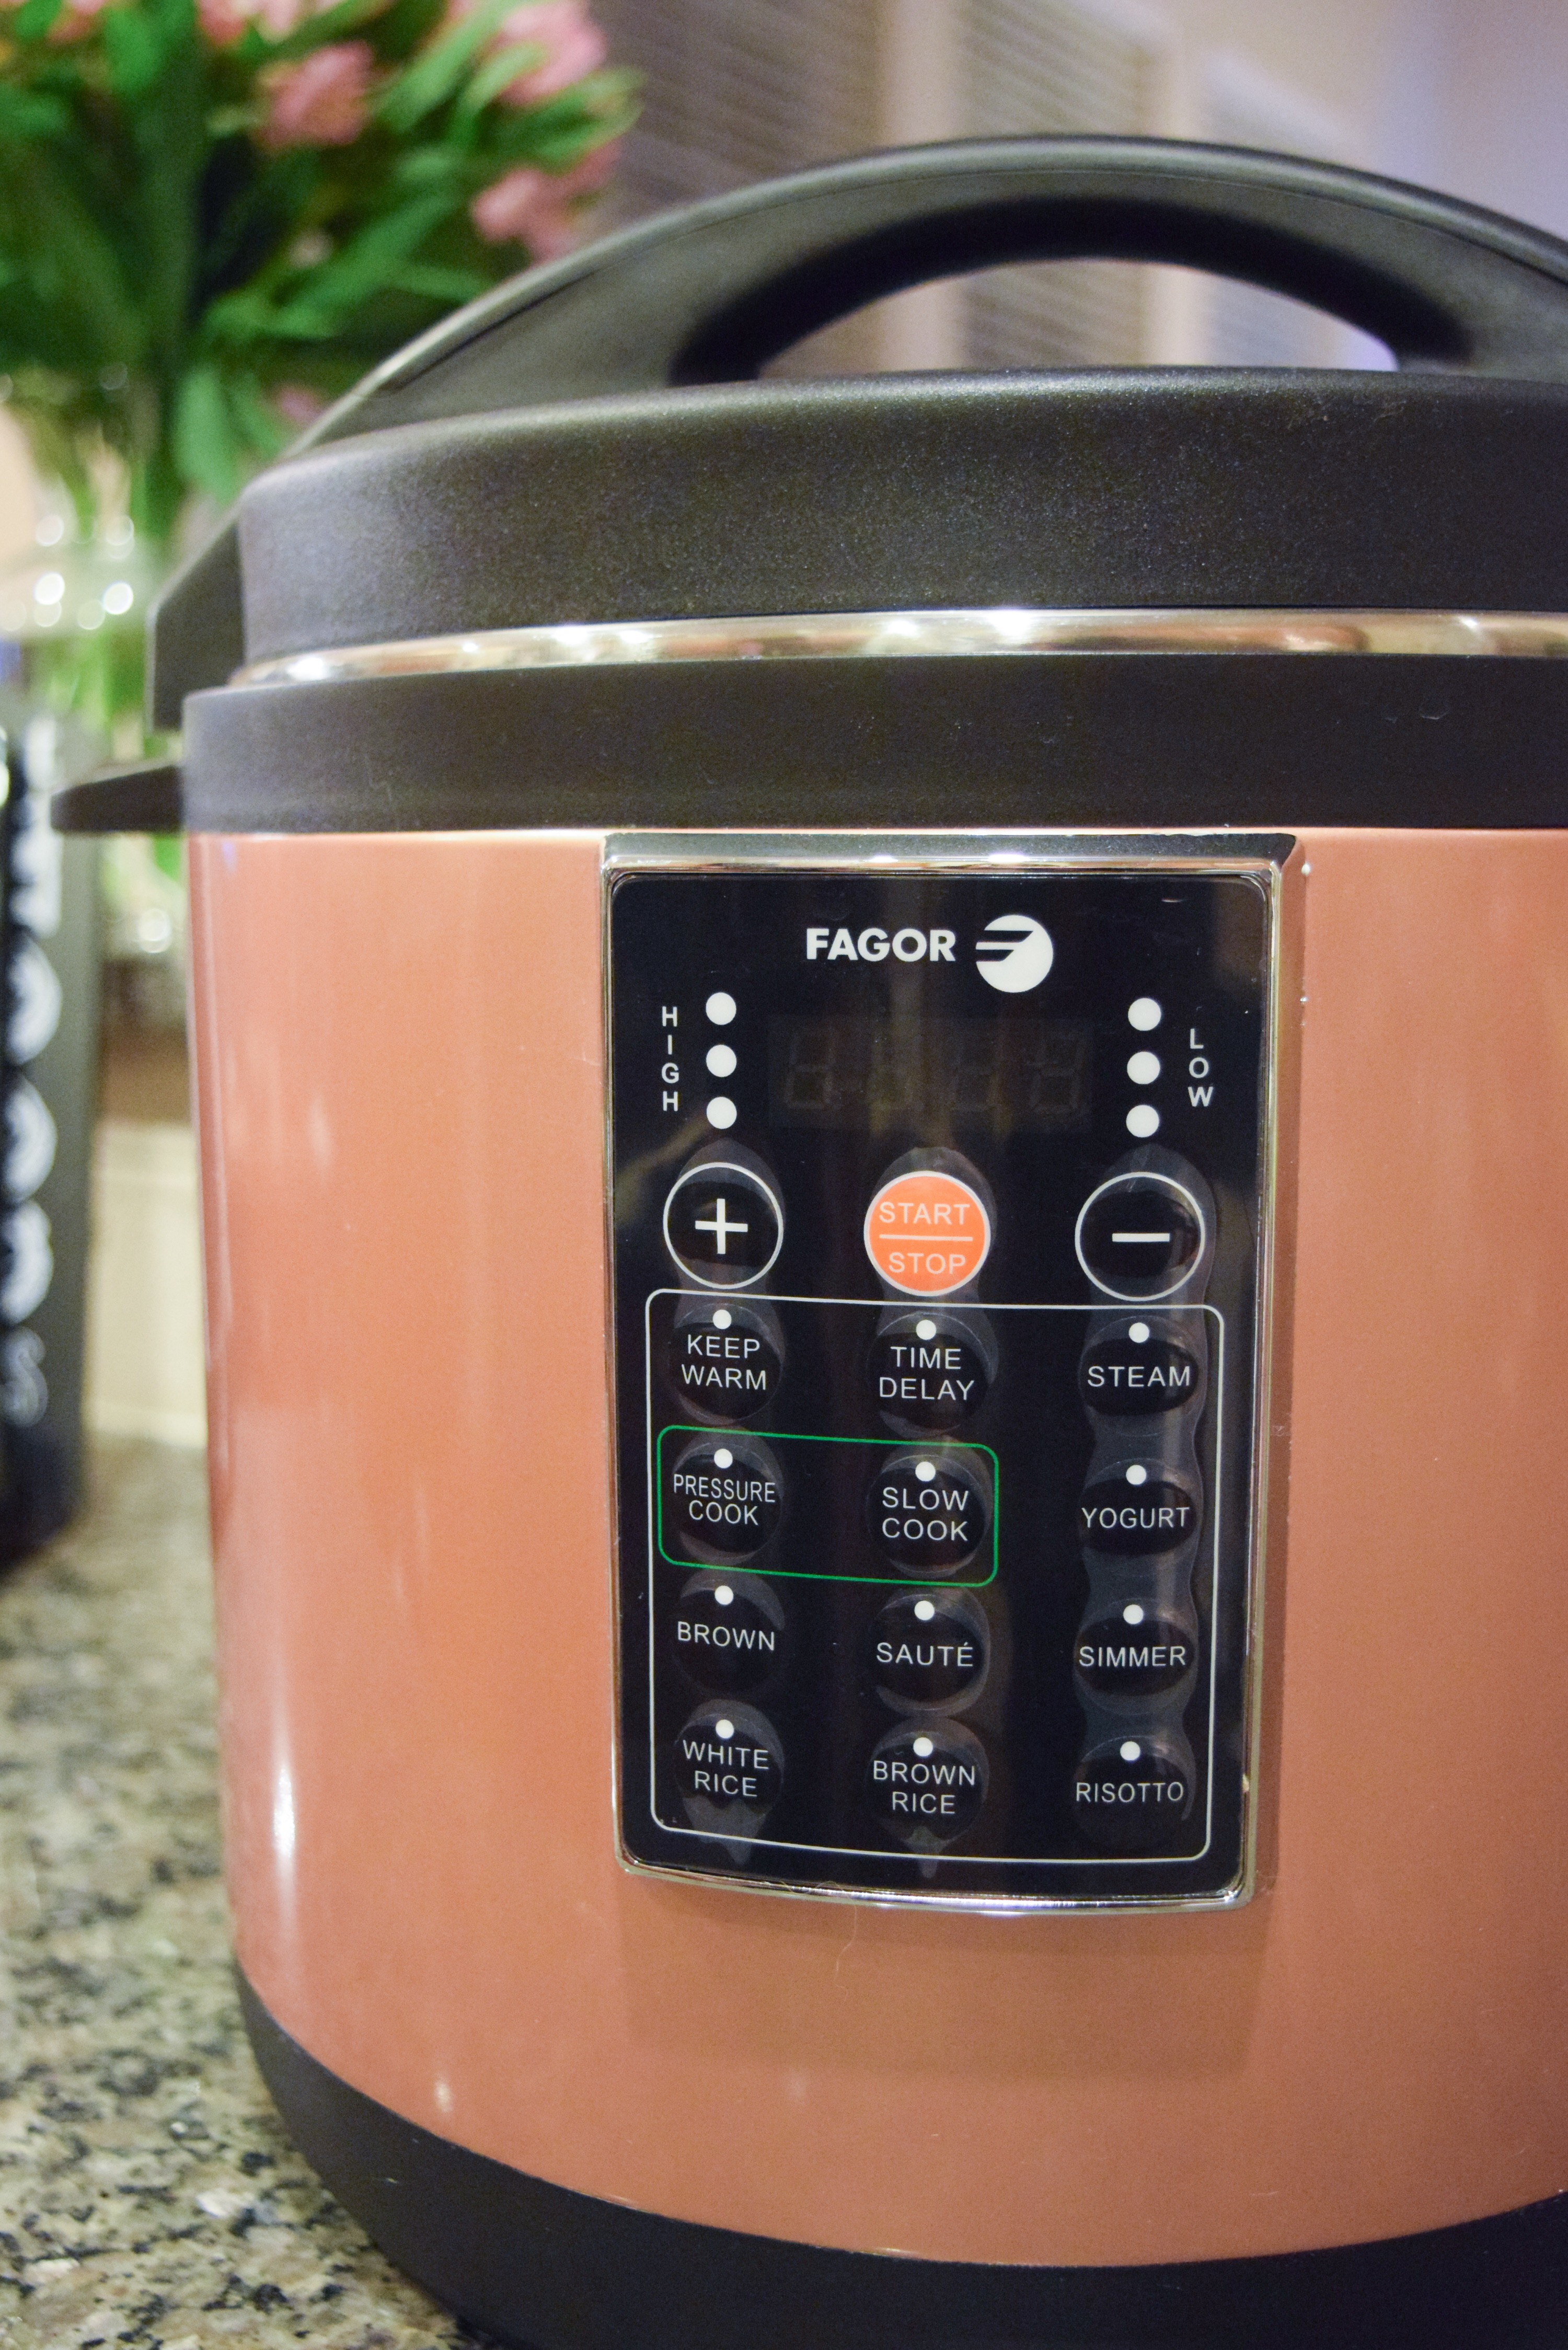 The Kitchen Appliance I Gave Up My Slow Cooker For